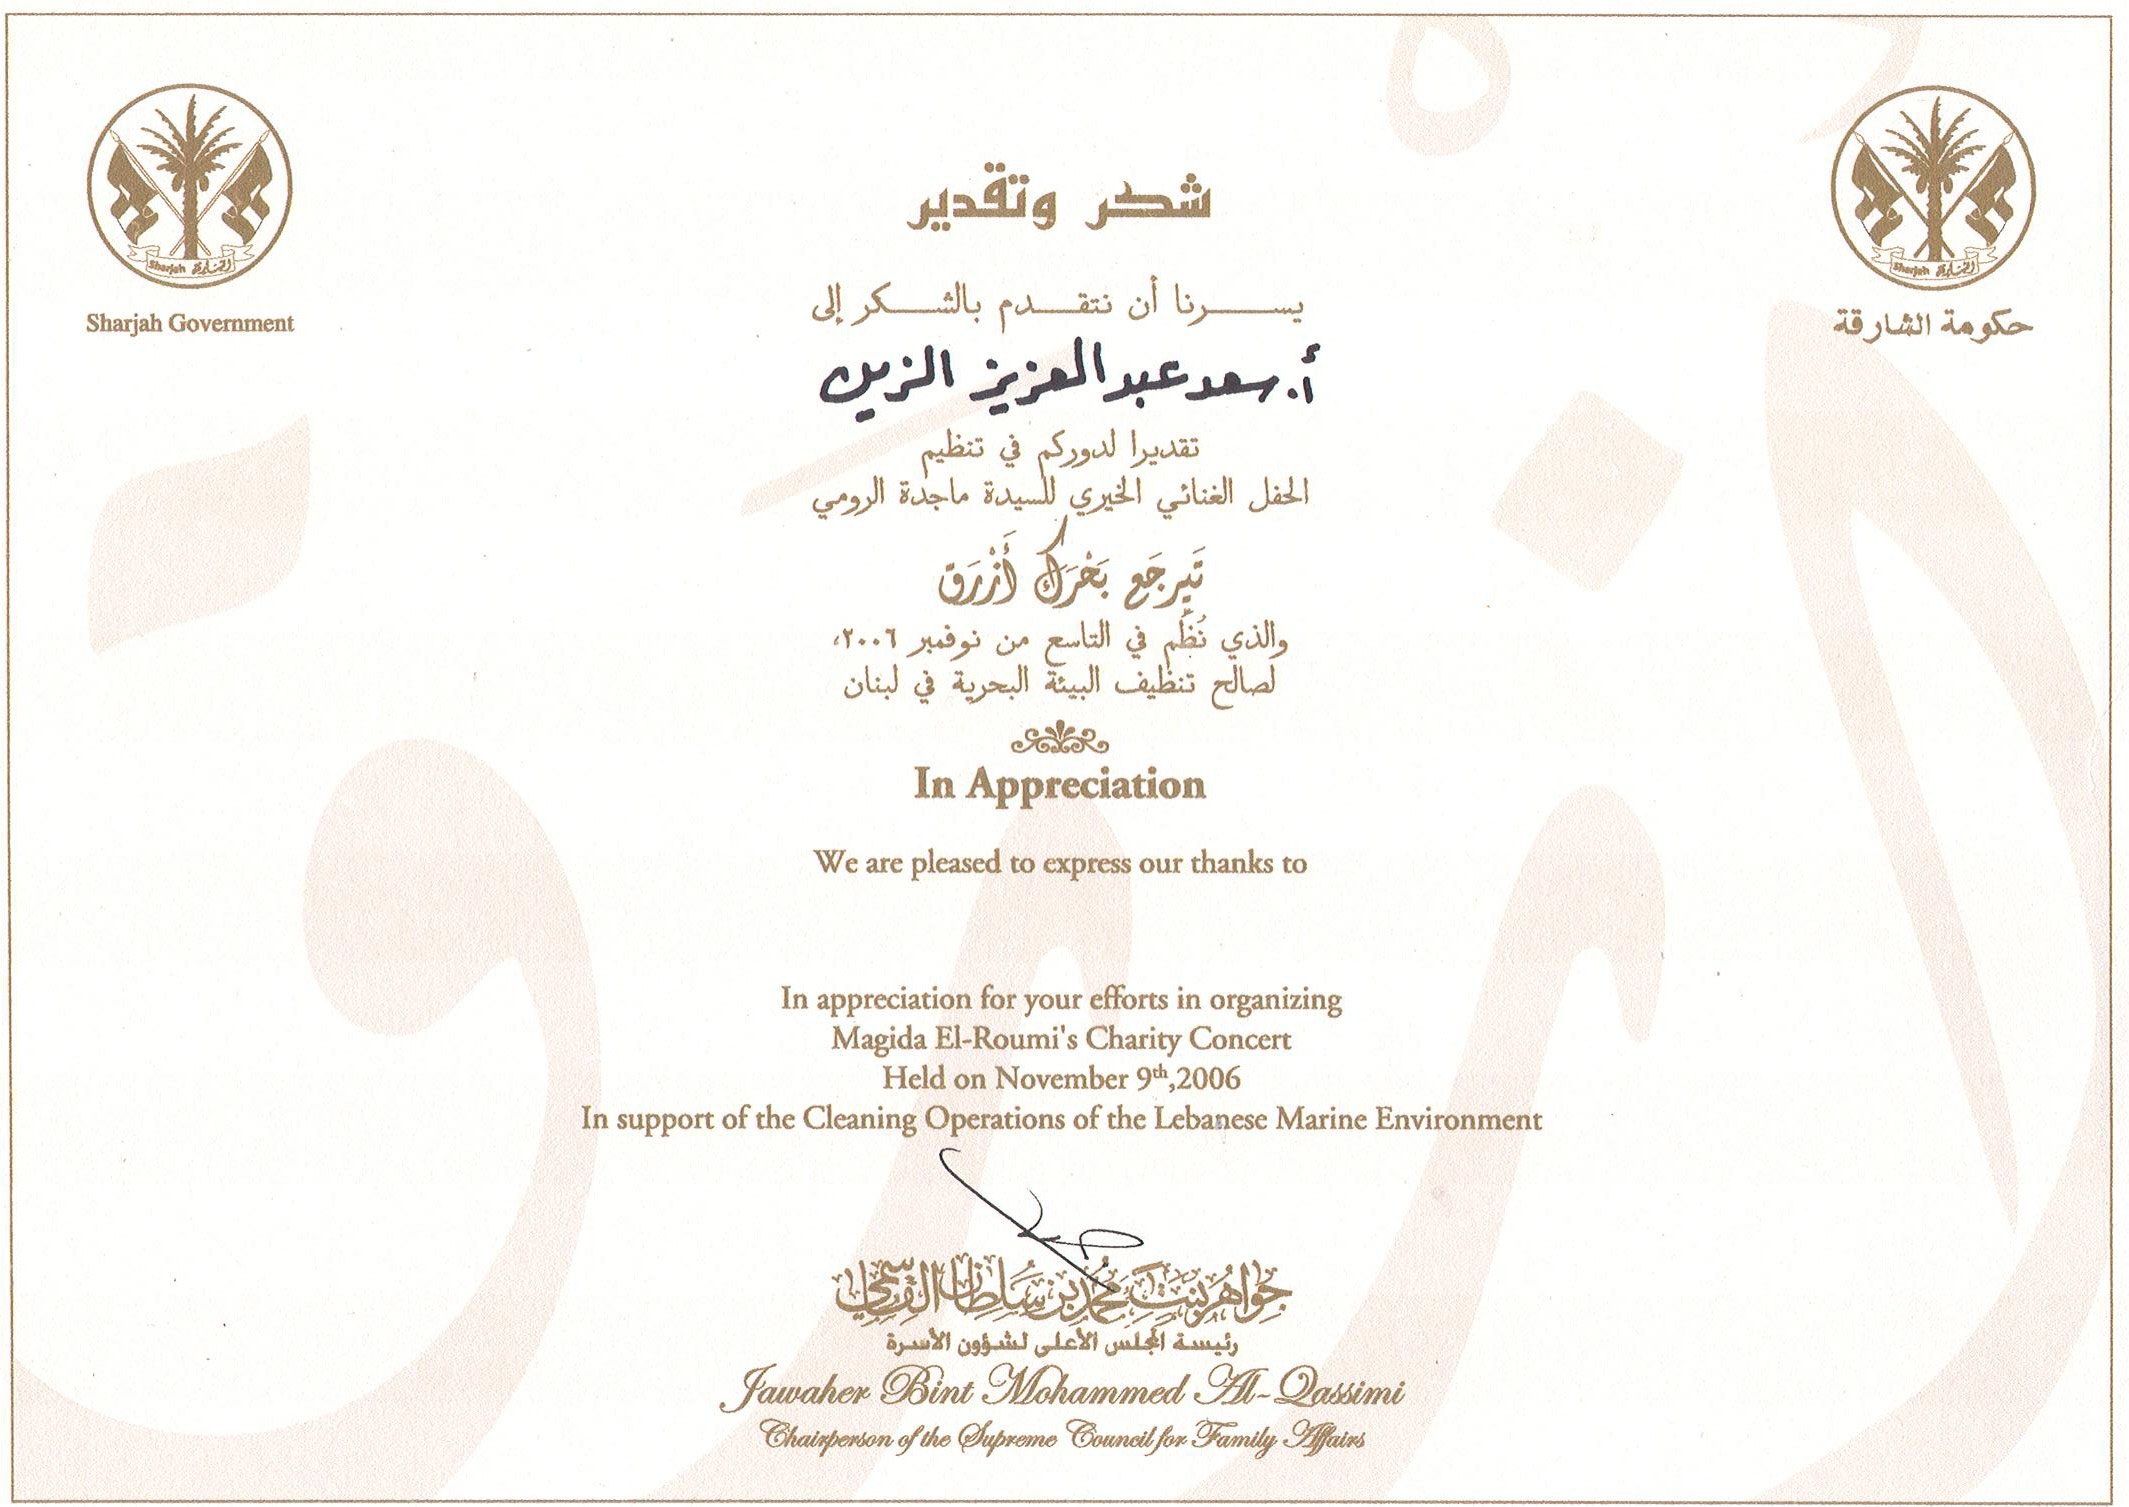 Certificate of appreciation Sharjah Government